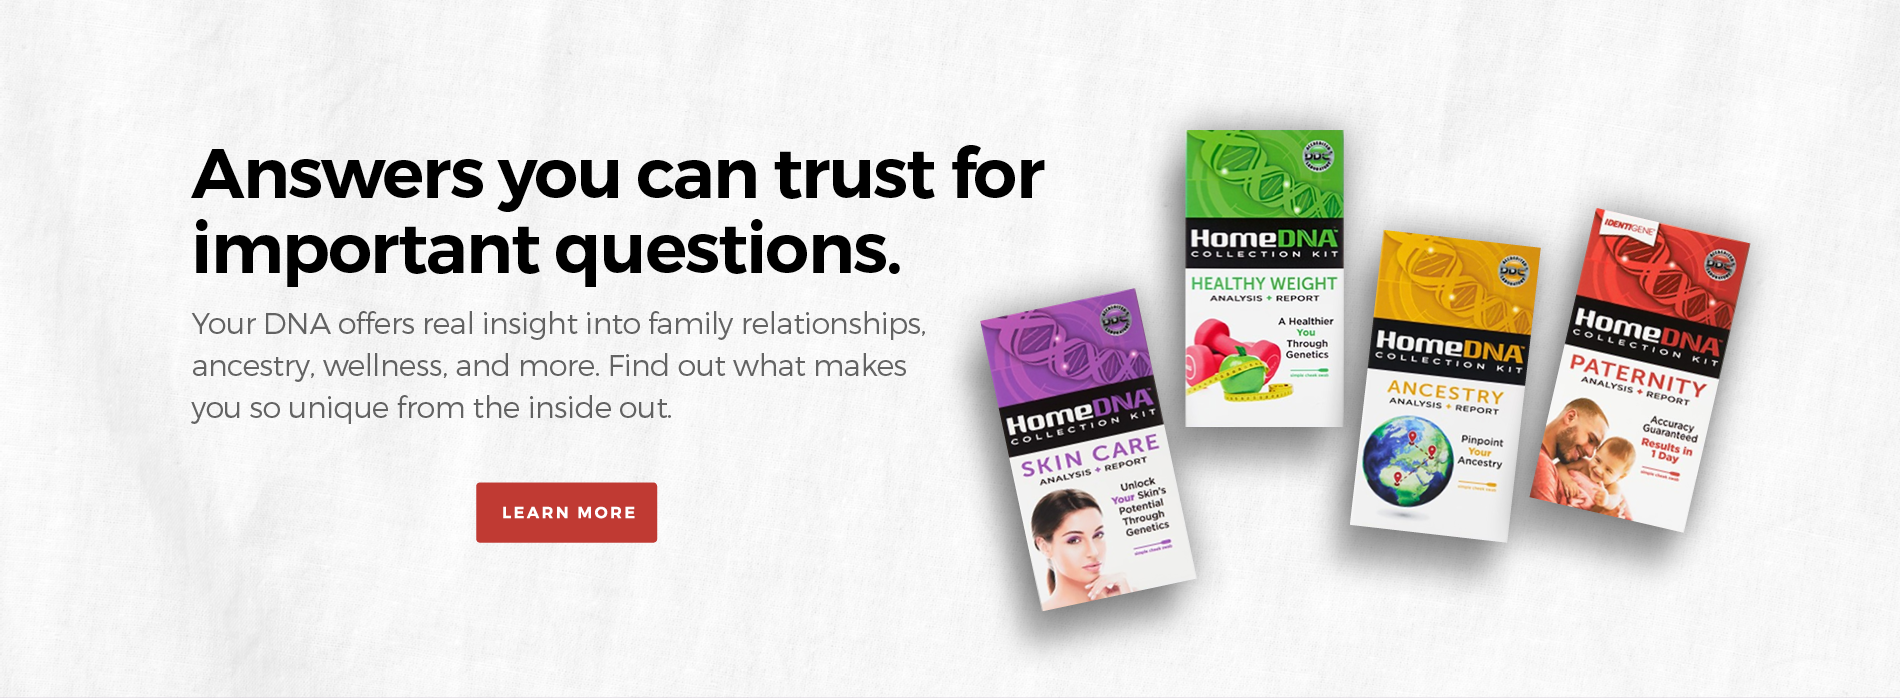 HomeDNA can tell you about your ancestry, health, and even your pets health and ancestry